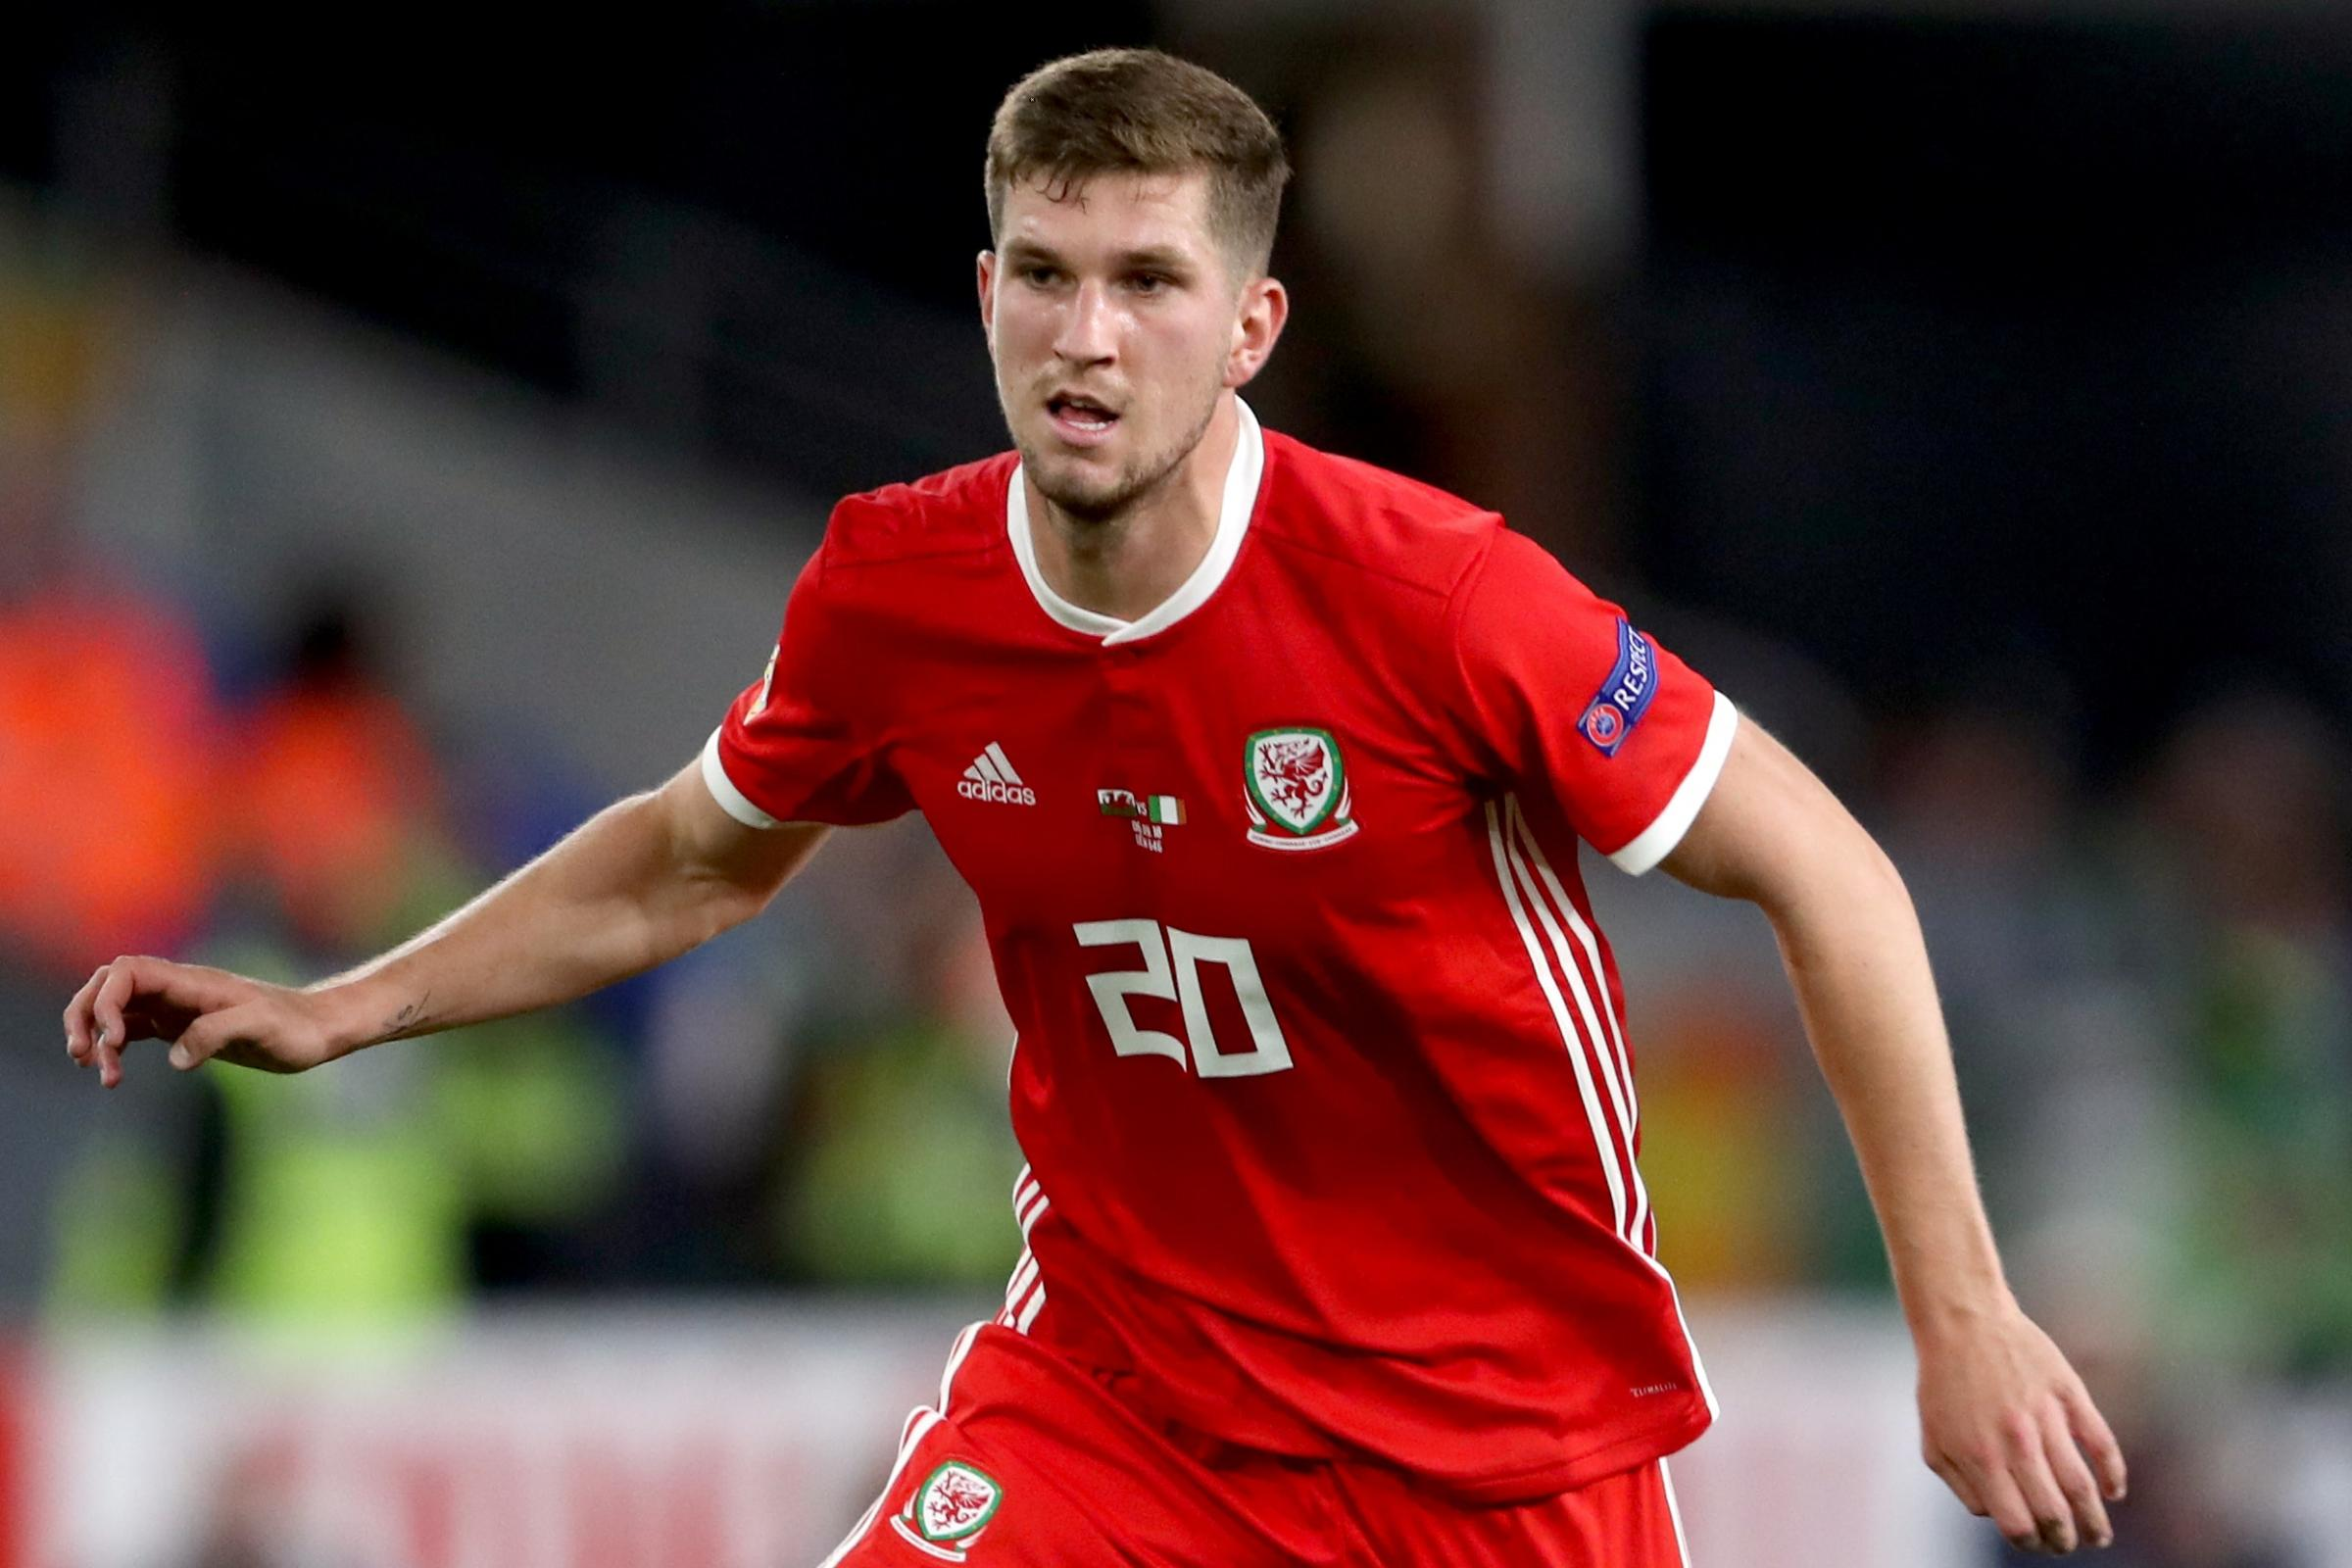 Brentford's Chris Mepham pulls out of Wales squad